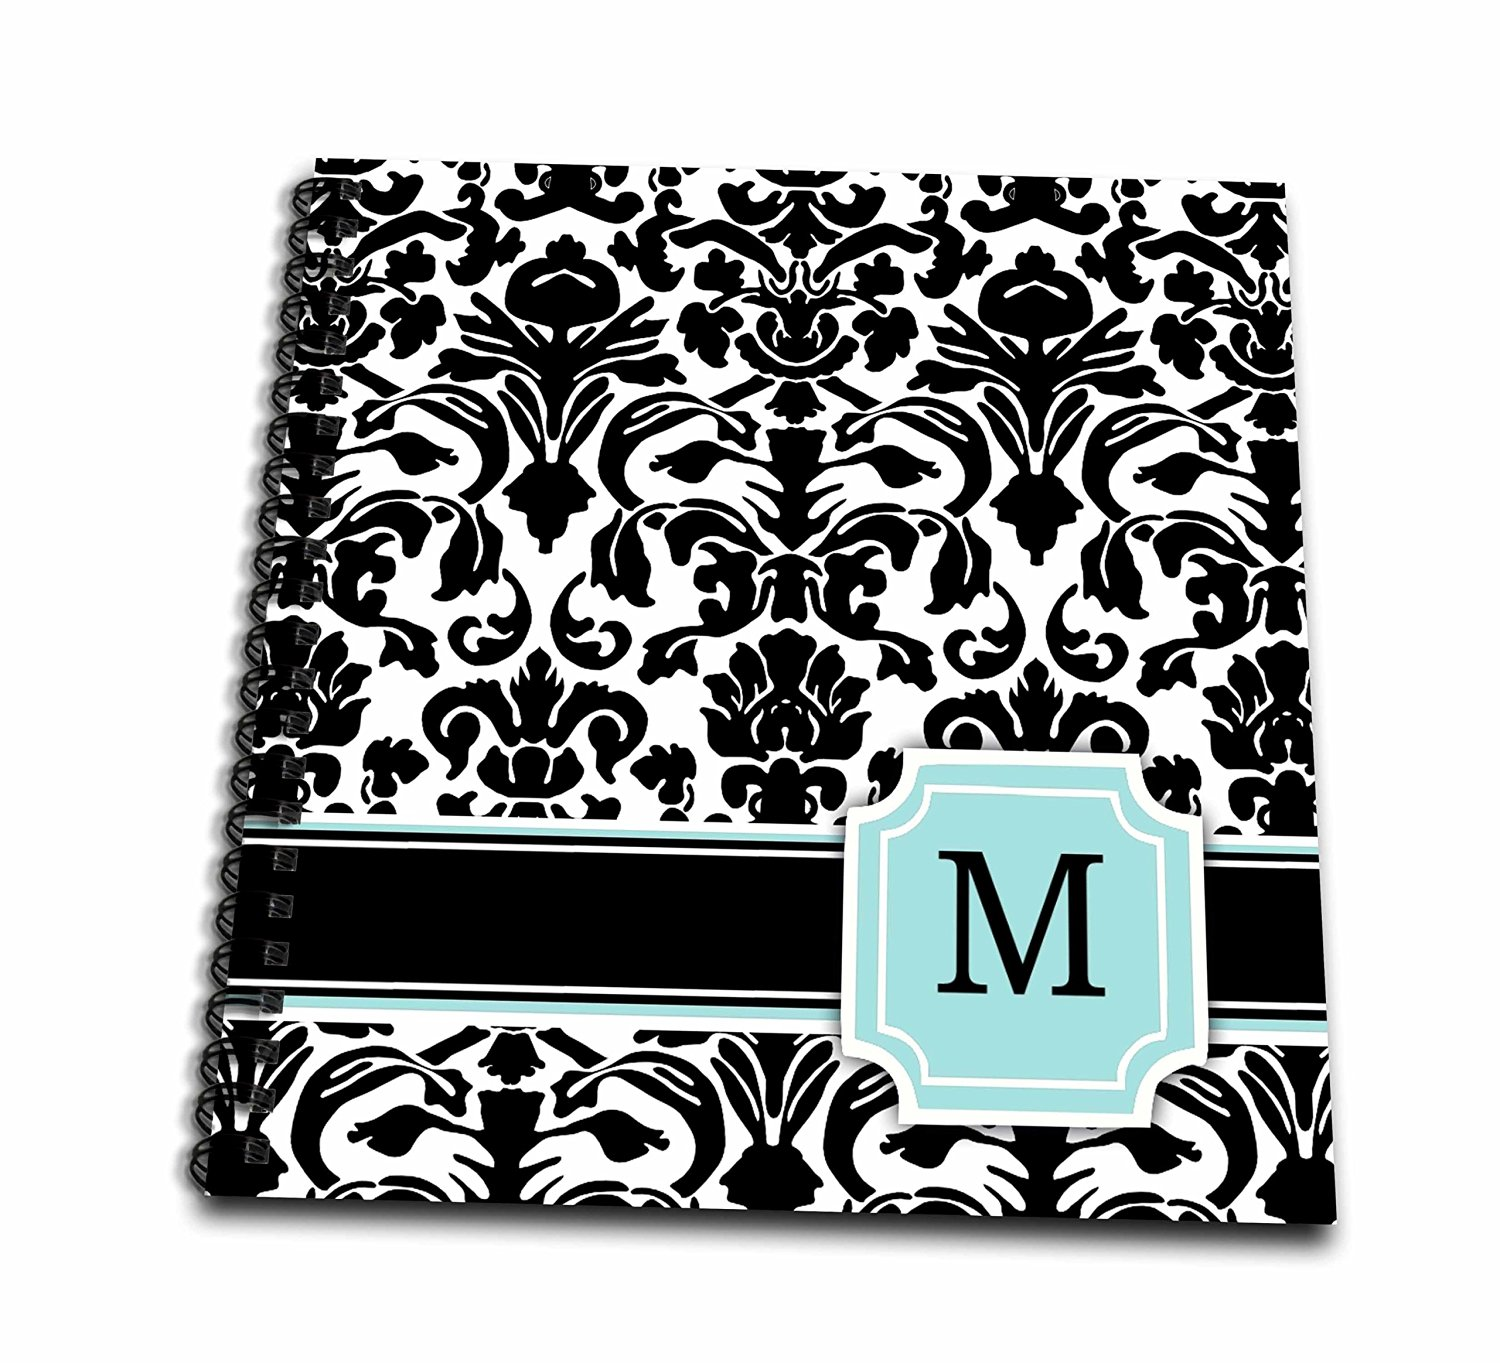 mp/_154542/_1 3dRose Personalized Letter B Aqua Blue Quatrefoil Pattern Teal Turquoise Mint Monogrammed Personal Initial Mouse Pad